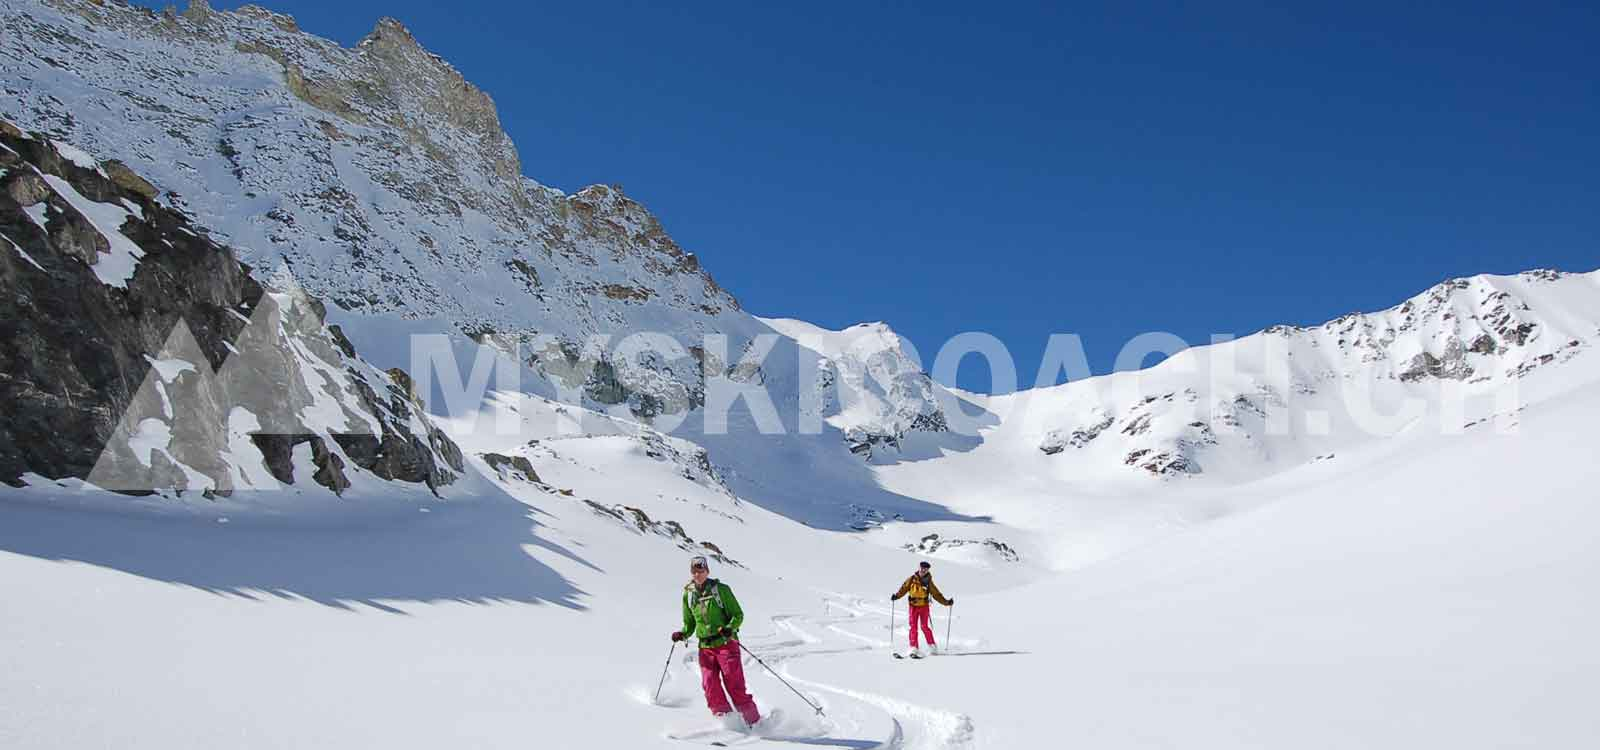 MYSKICOACH.CH VALAIS-SWITZERLAND Ski, freeride instruction and off-piste private coaching for adults and teenagers from beginner to intermediate level. Aiming for autonomy while discovering new spots